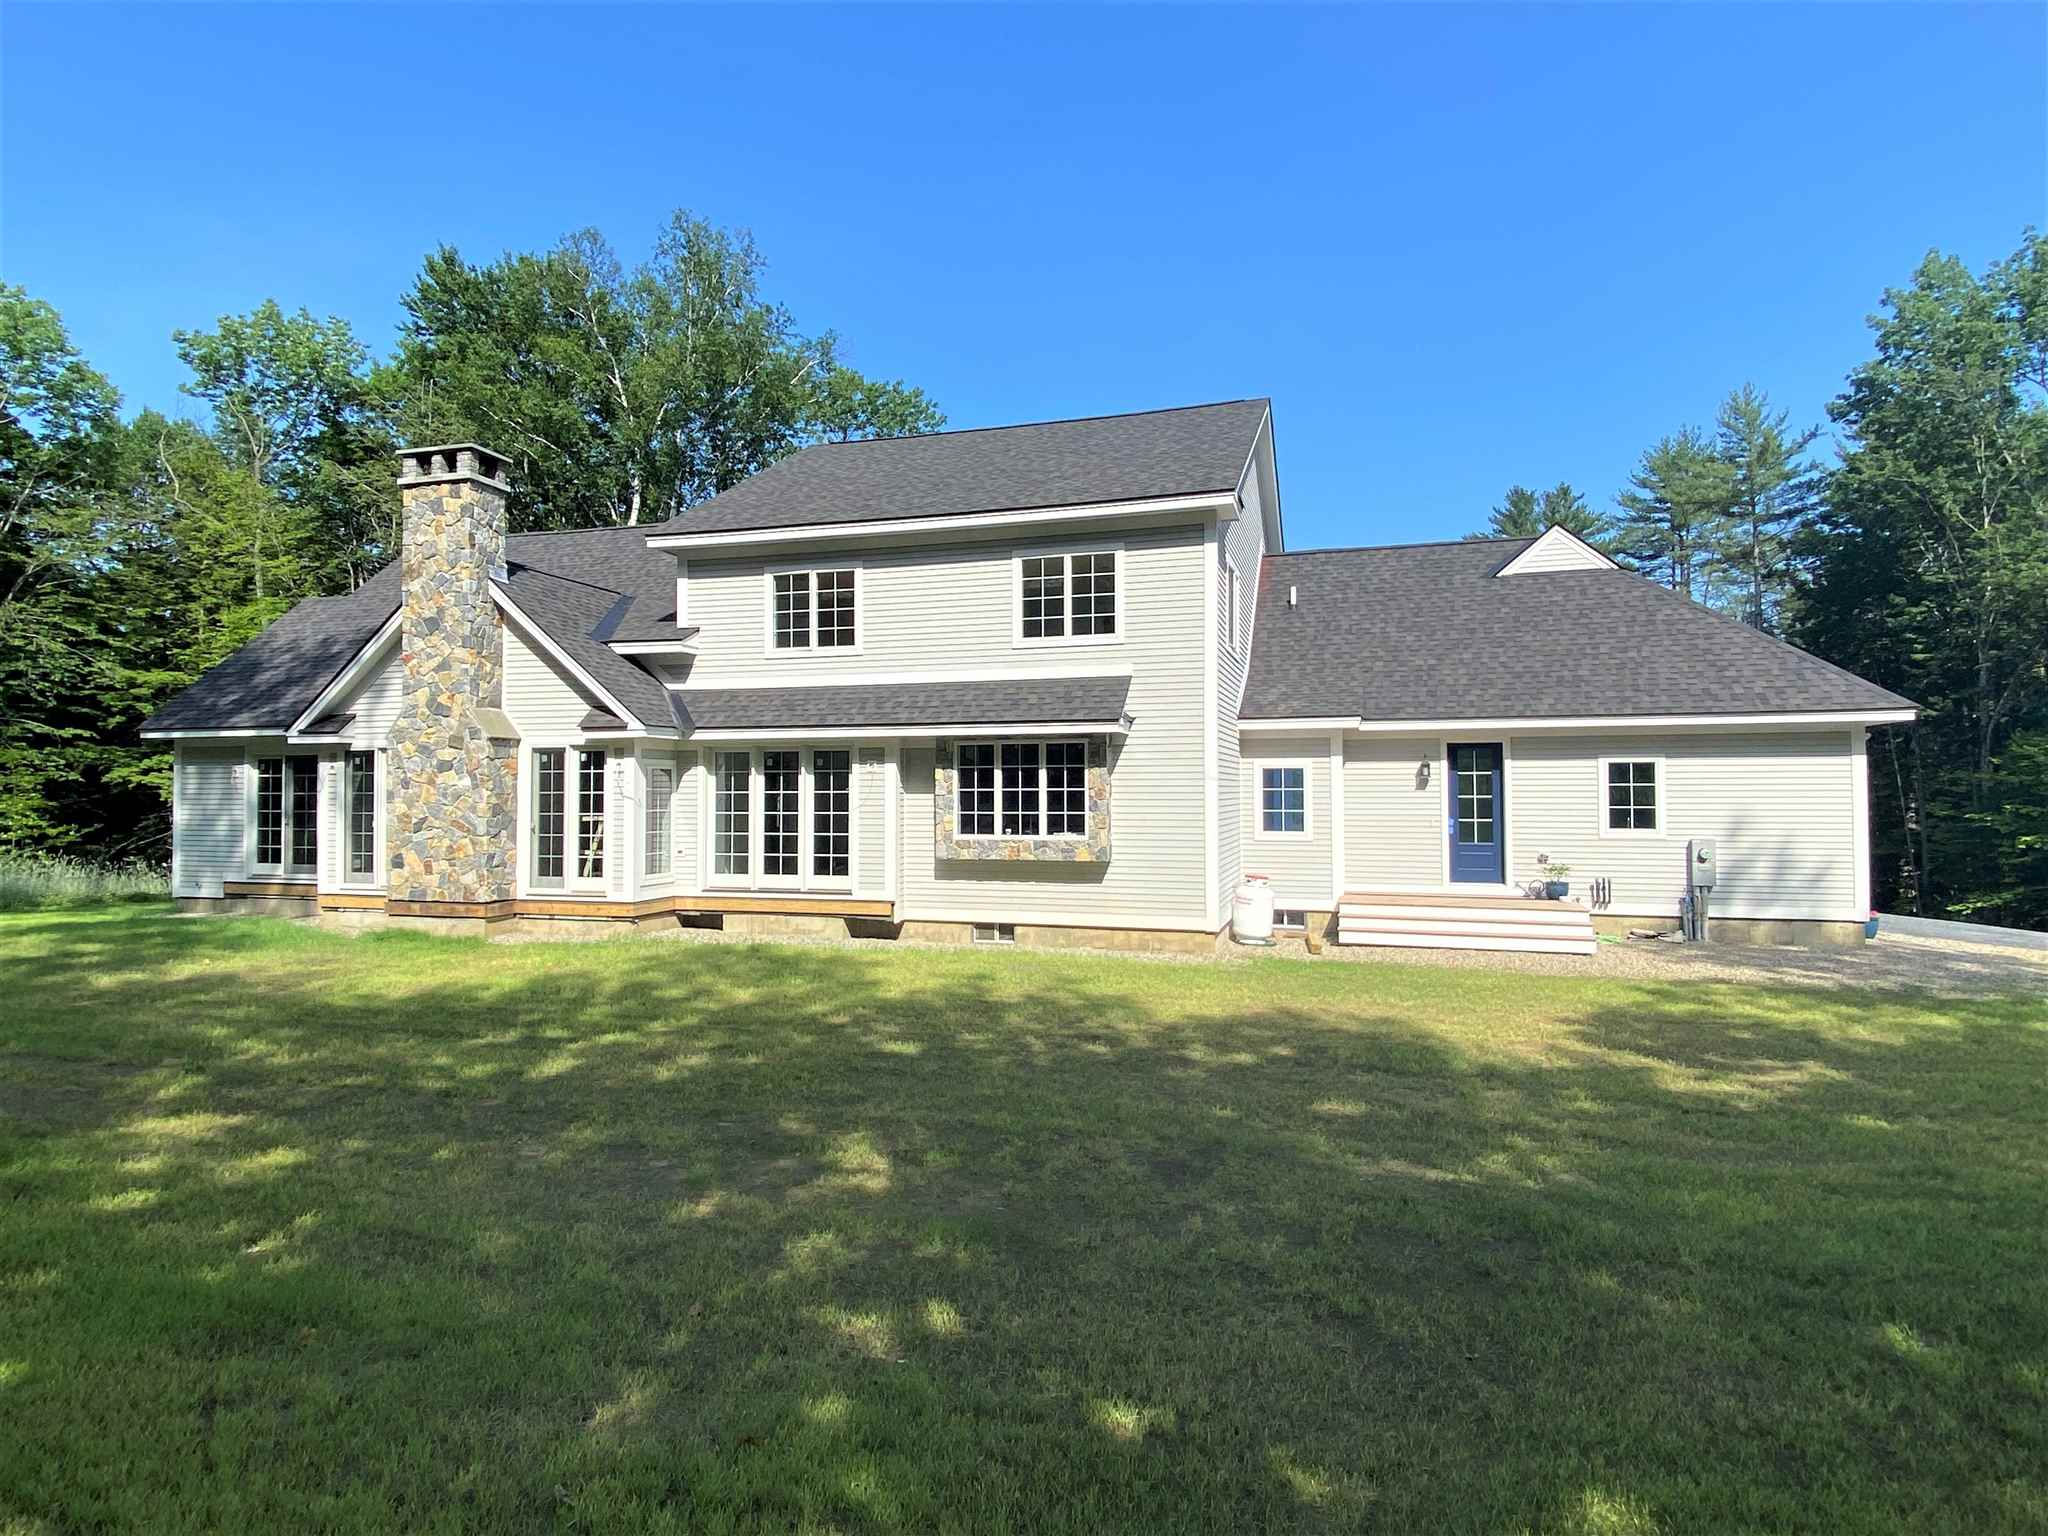 West Windsor VT 05037 Home for sale $List Price is $1,150,000